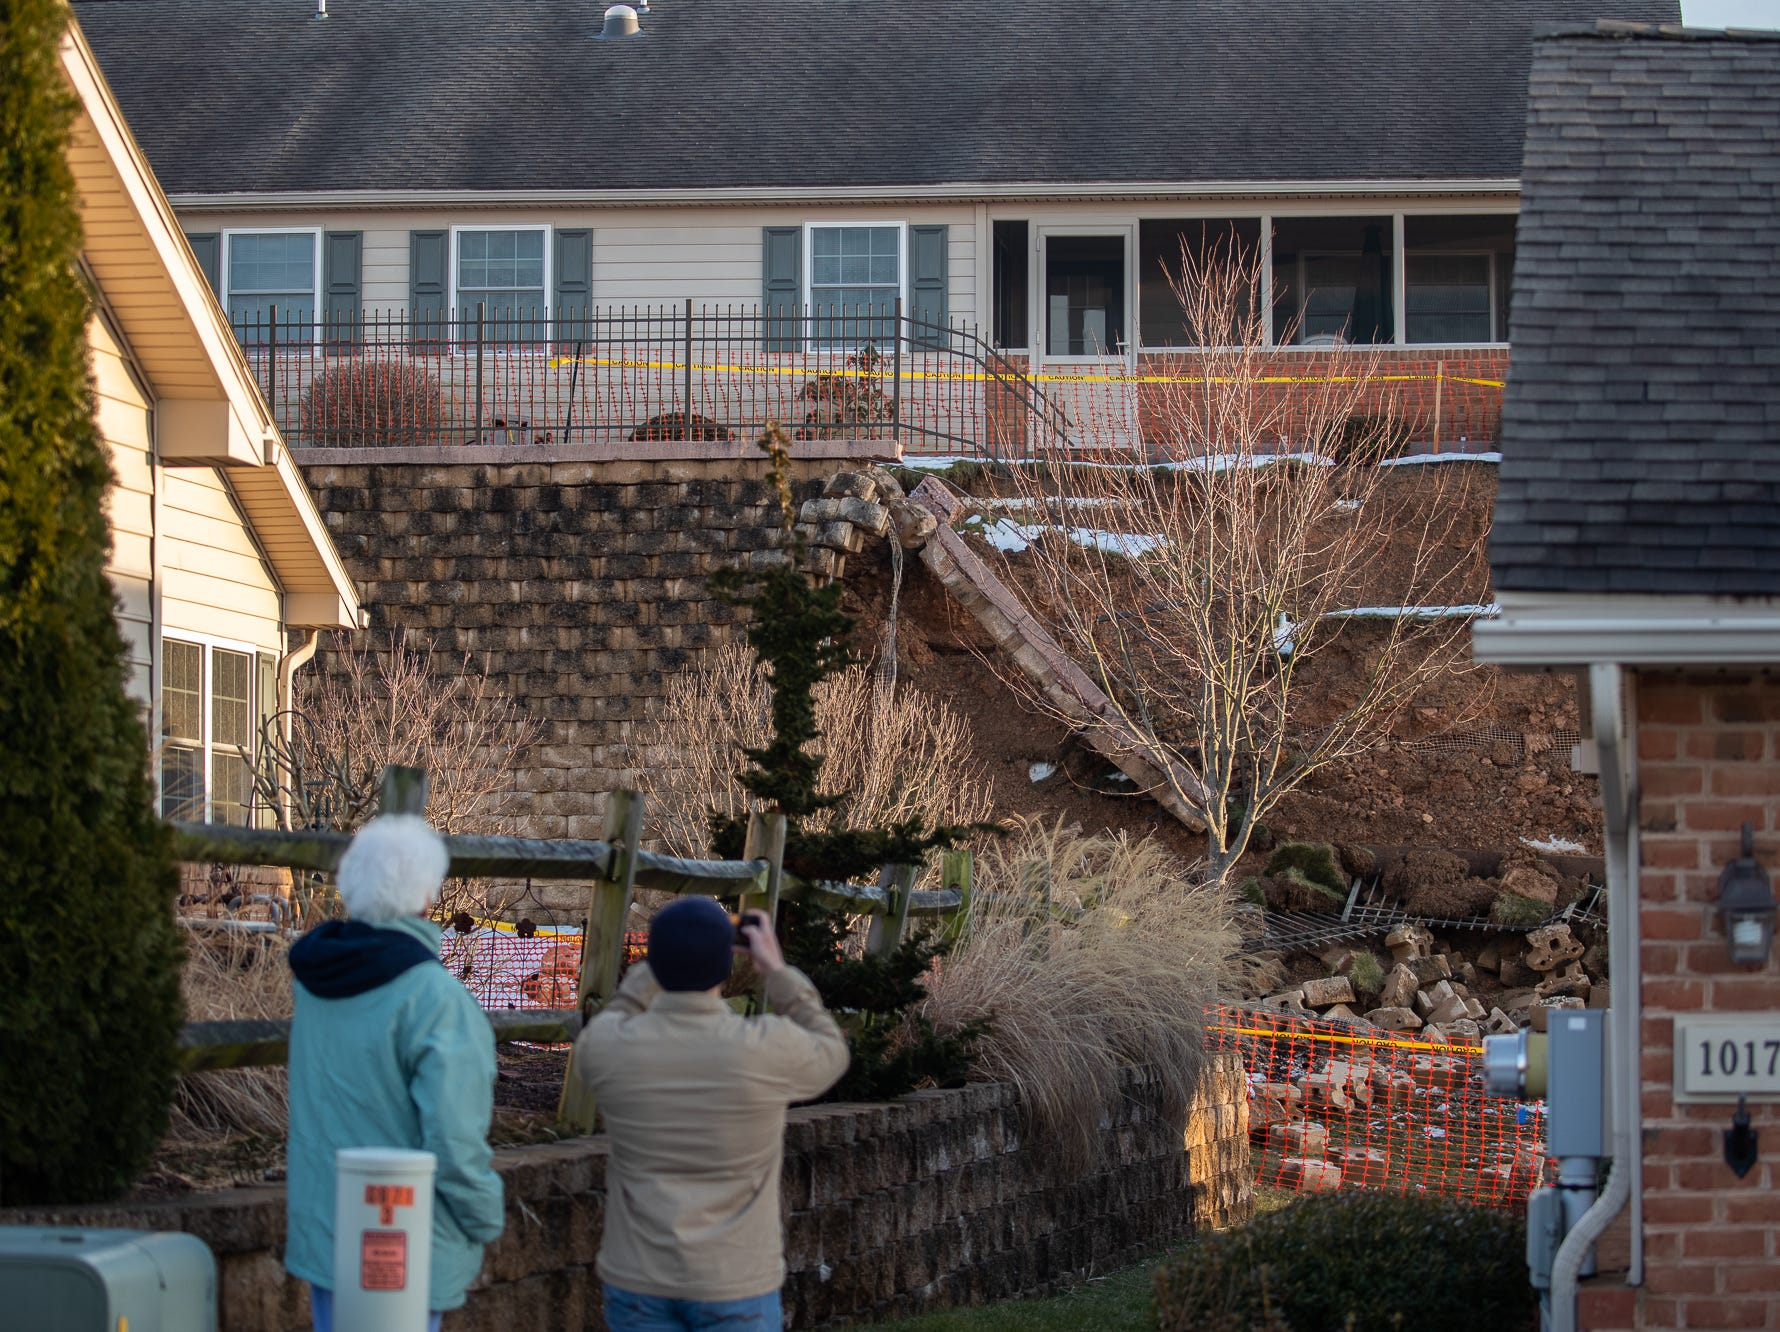 Onlookers take photos at the scene of a retaining wall collapse on the 1000 block of Bear Crossing, Sunday, March 10, 2019, in West Manheim Township. No one was injured in the collapse, which forced the evacuations of 26 housing units.